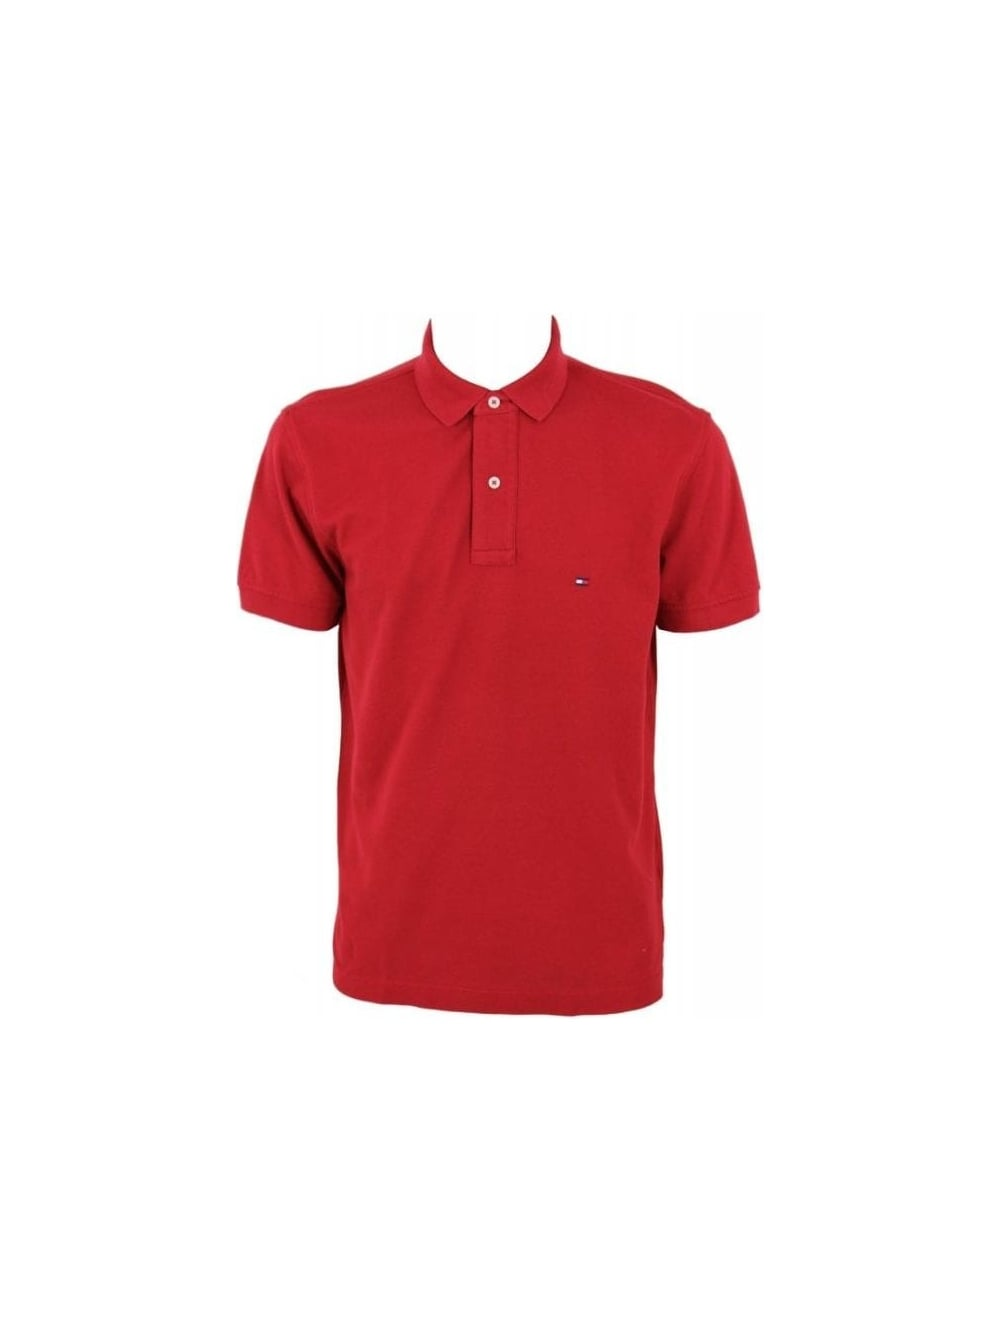 a76806ec Tomm Hilfiger Core Knitted Pique Polo in Summer Red - Northern Threads